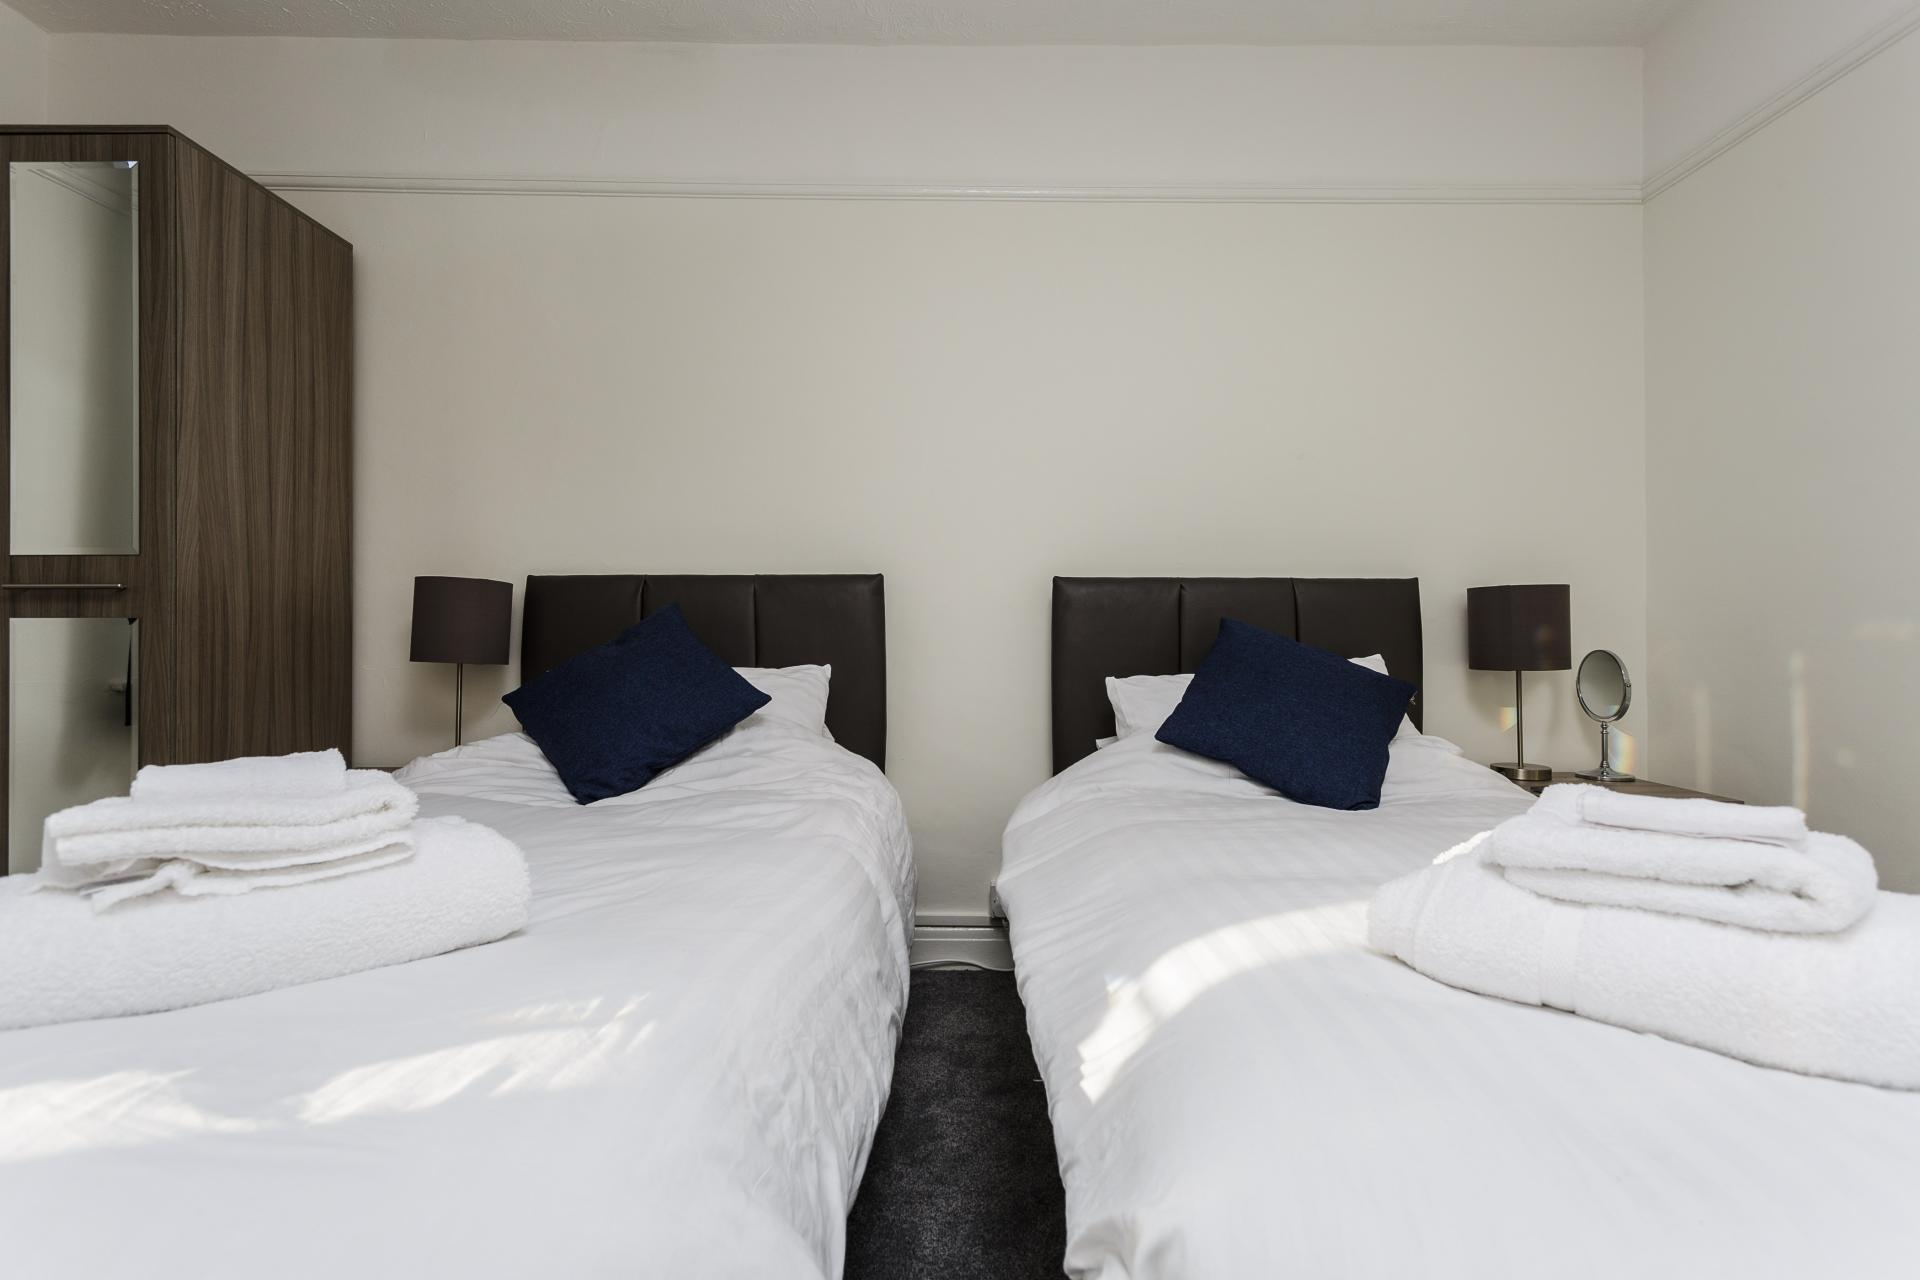 Beds at Braganza House Apartments, Old Portsmouth, Portsmouth